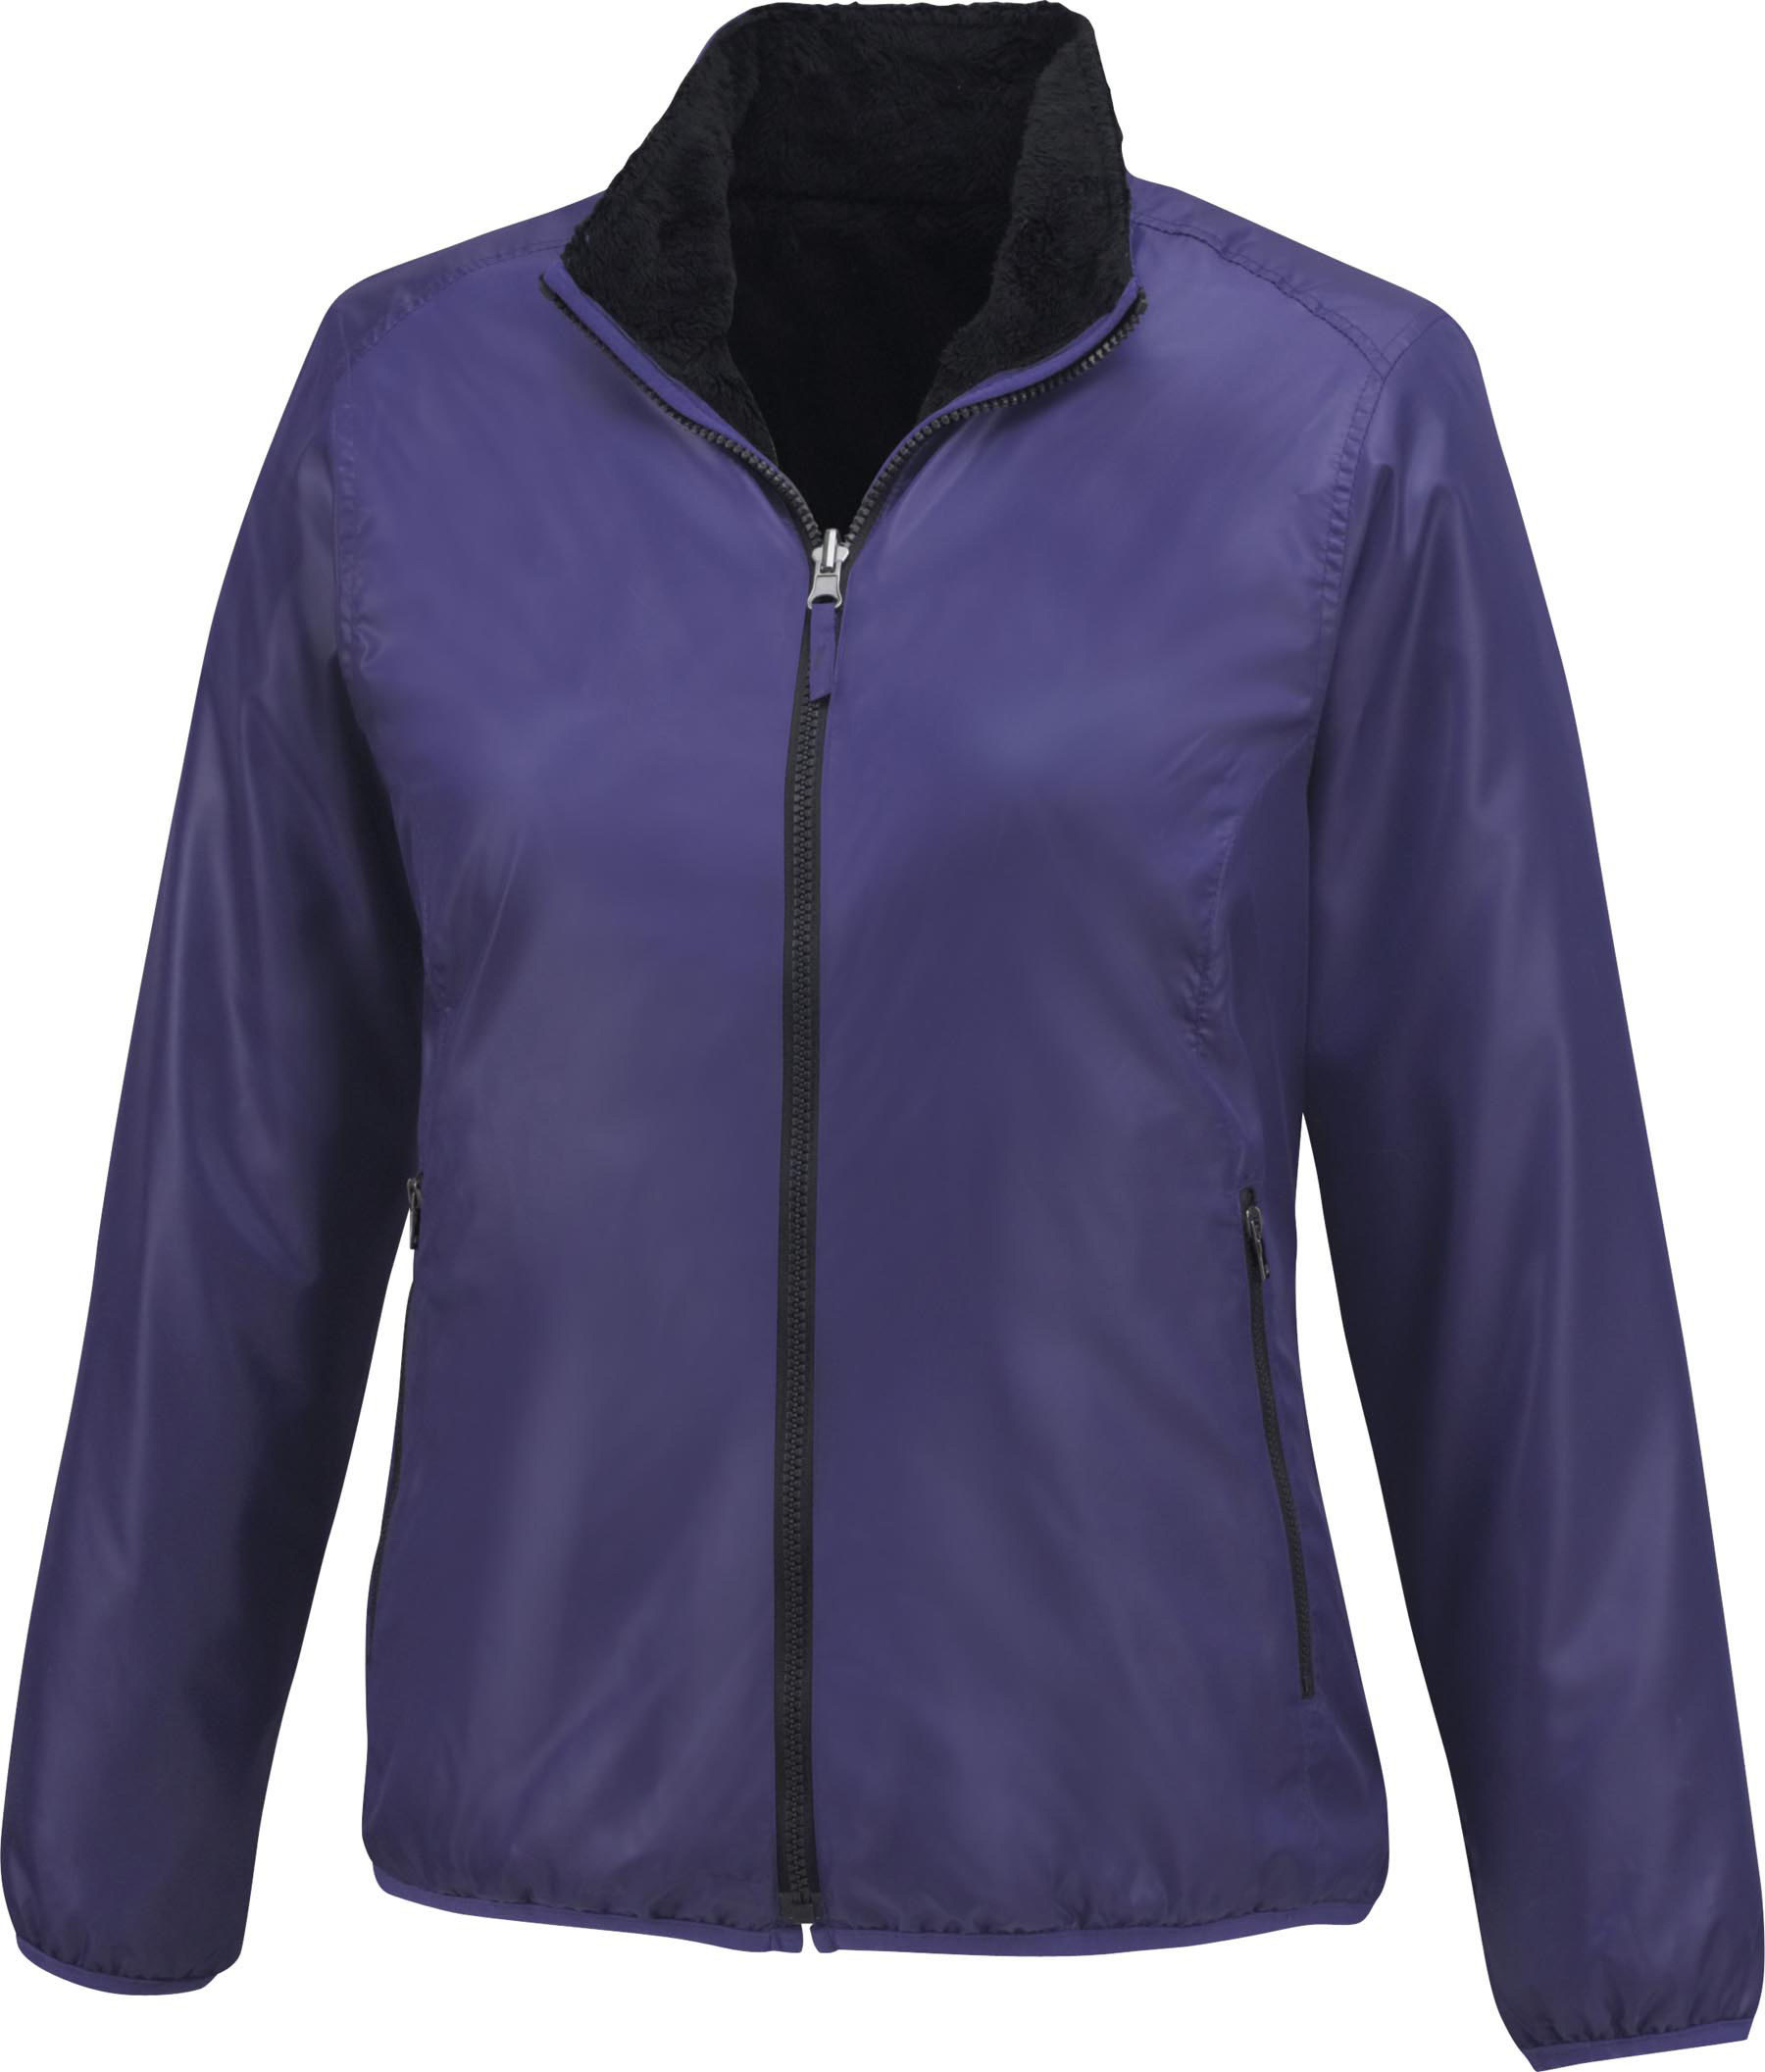 Ash City Reversible Jackets 78647 - Ladies' Reversible Jacket